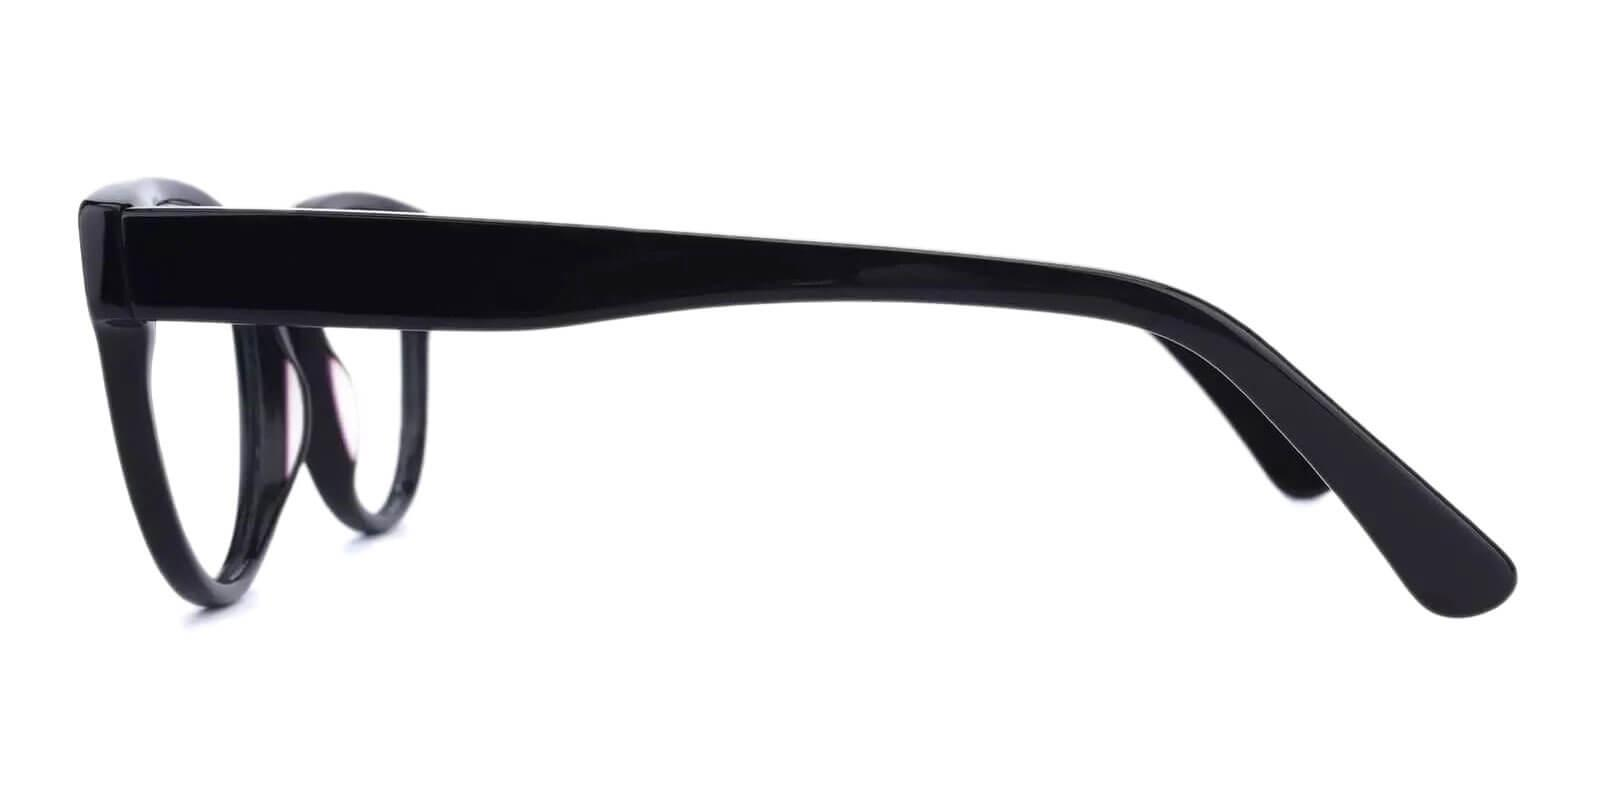 Aurora Black Acetate Eyeglasses , Fashion , SpringHinges , UniversalBridgeFit Frames from ABBE Glasses